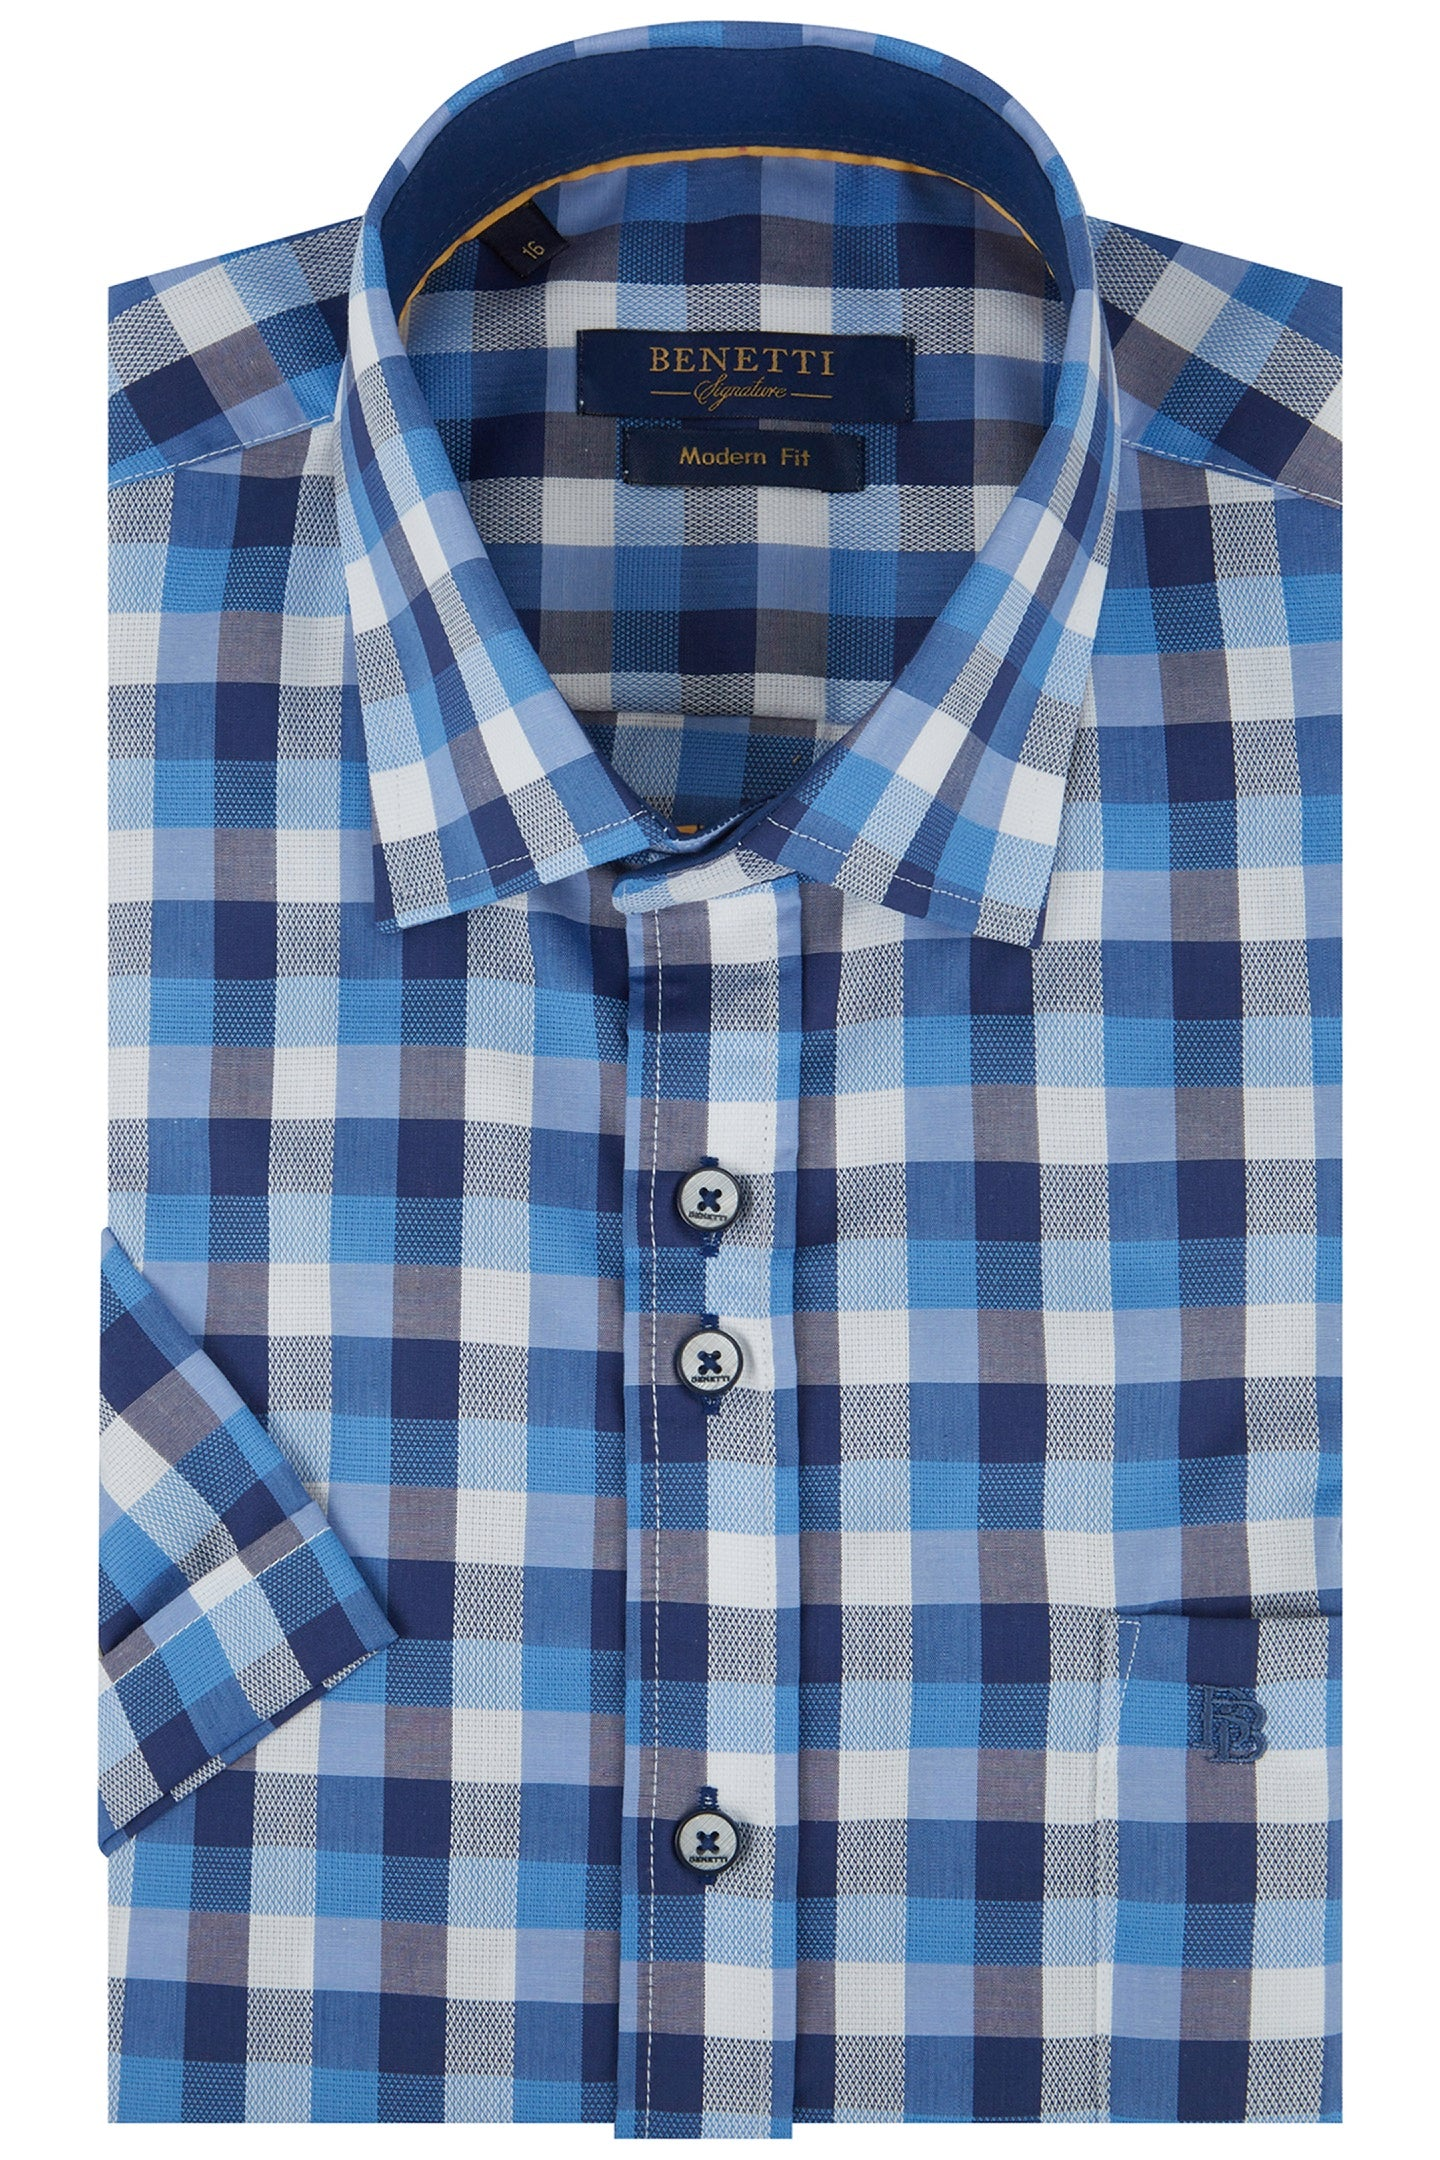 Benetti Drew Short Sleeve Shirt